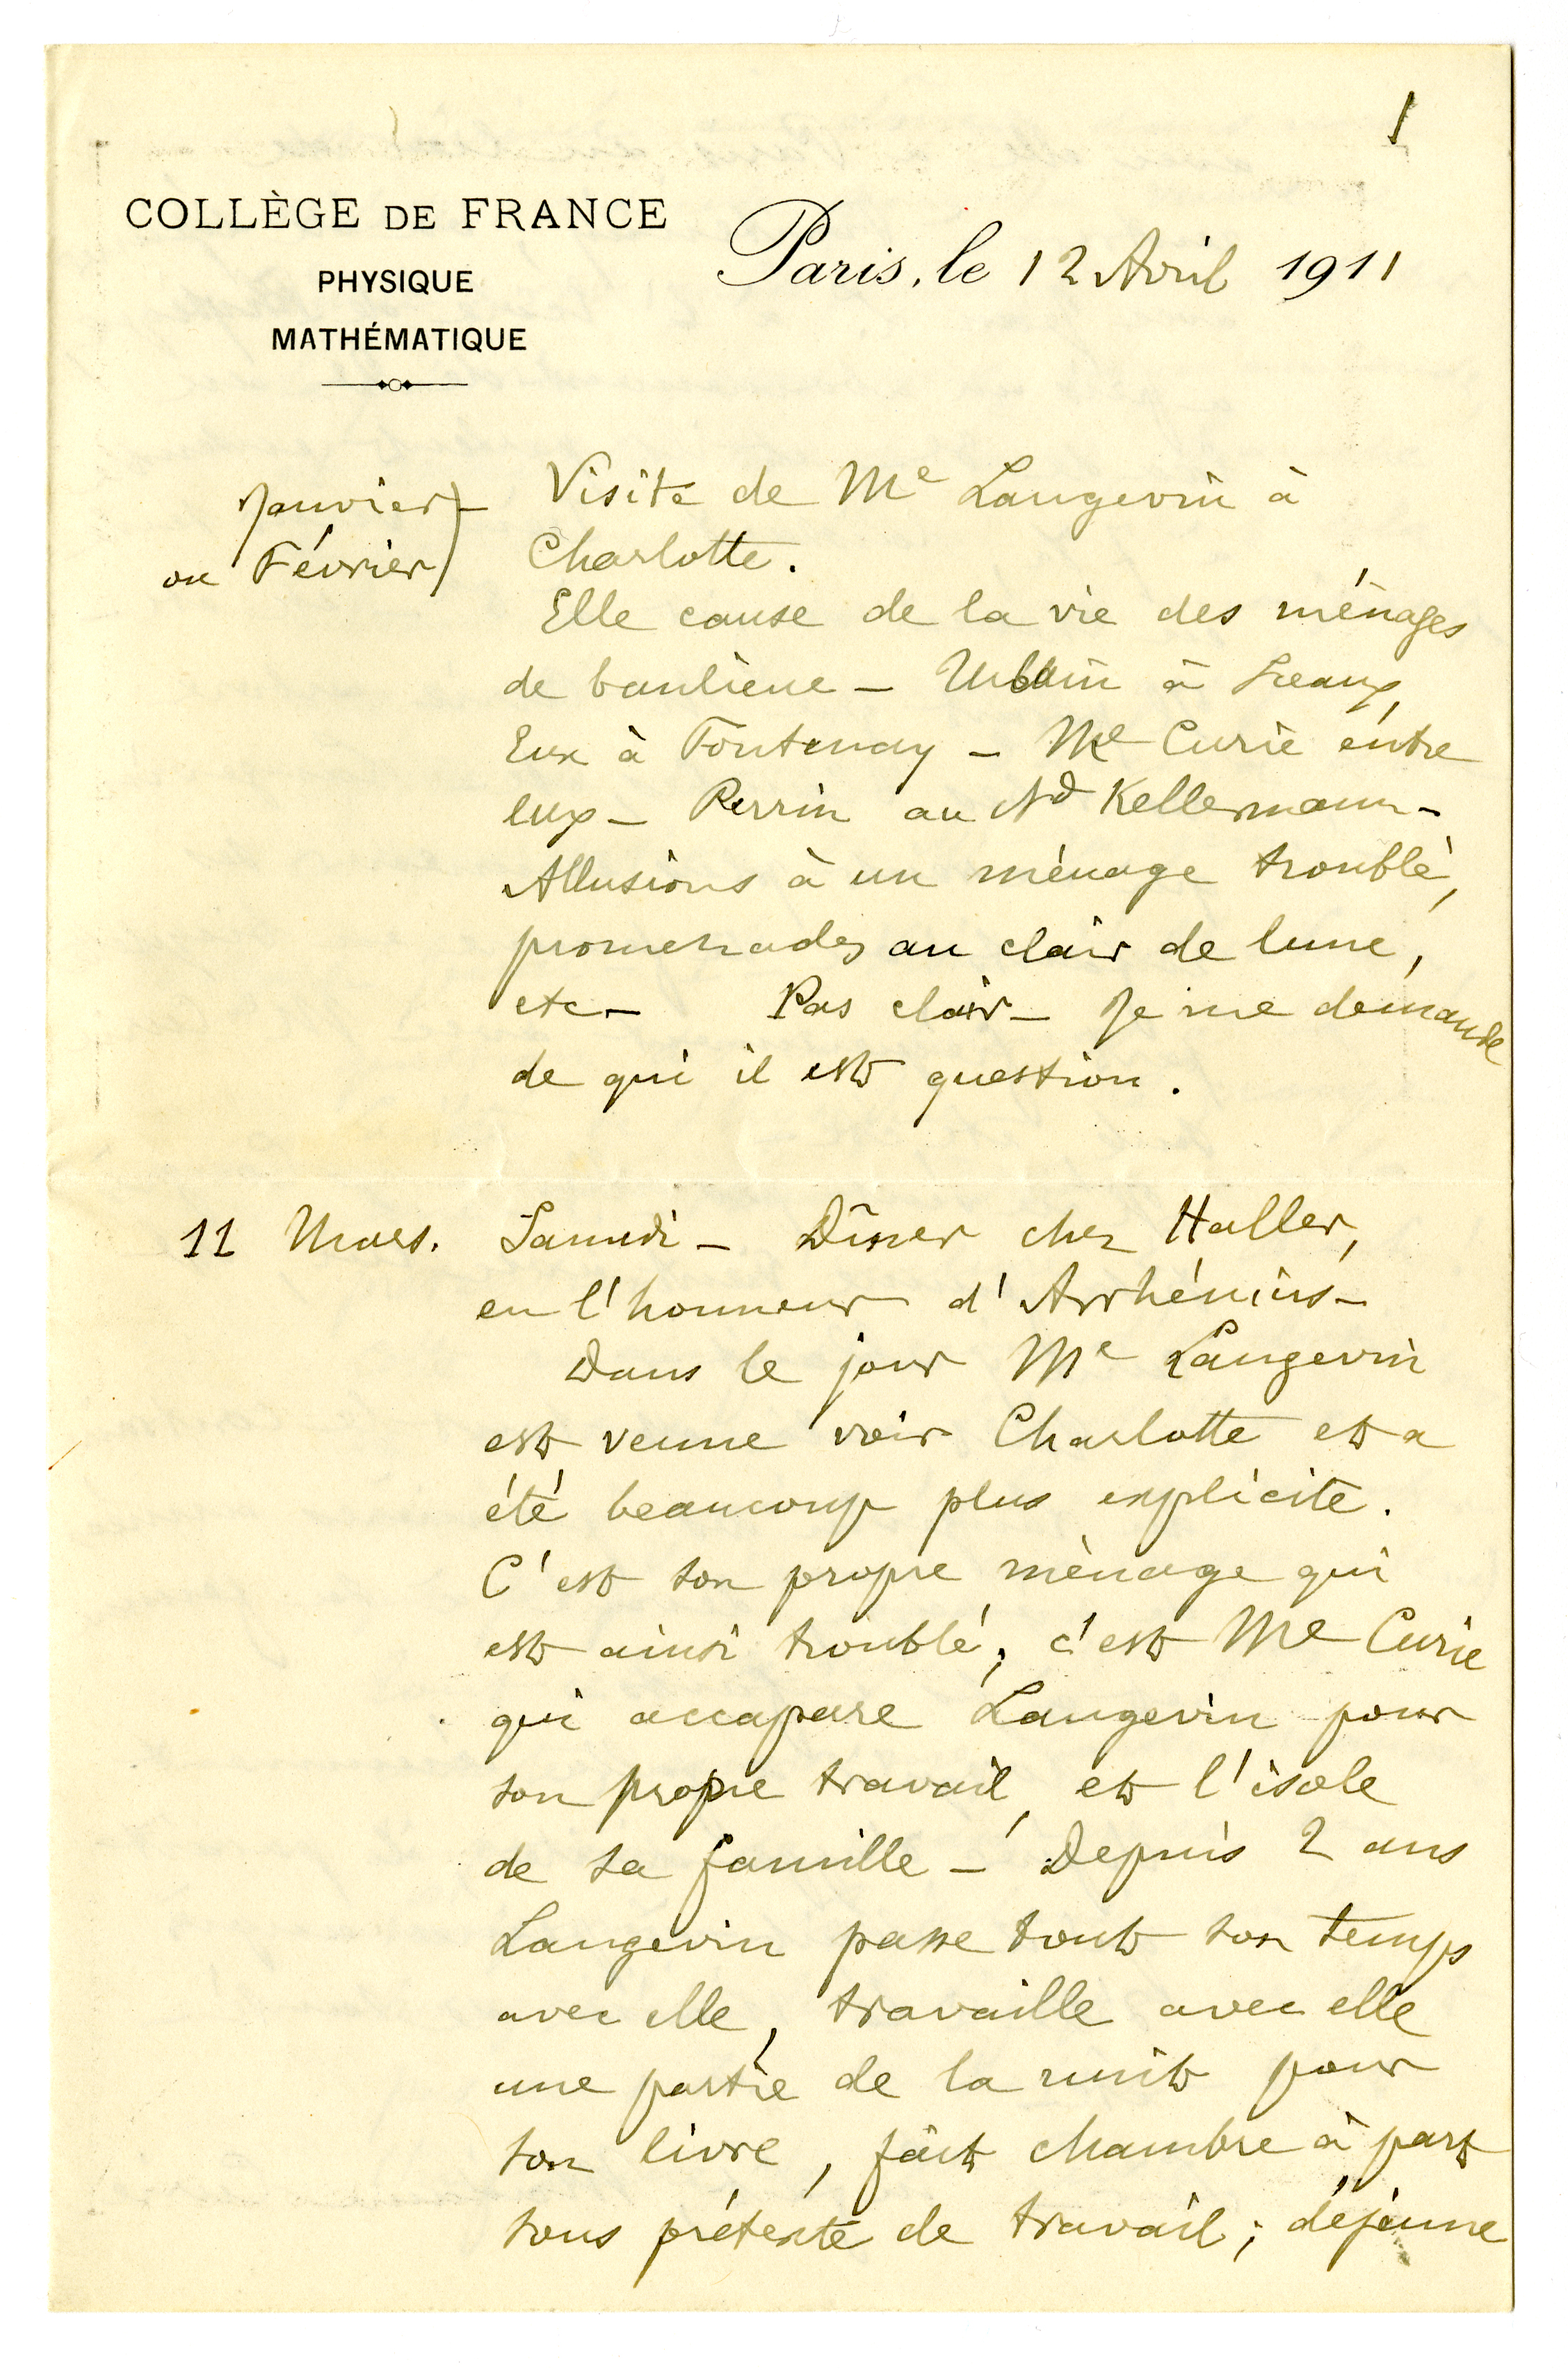 A journal page from the Papers of Léon Brillouin